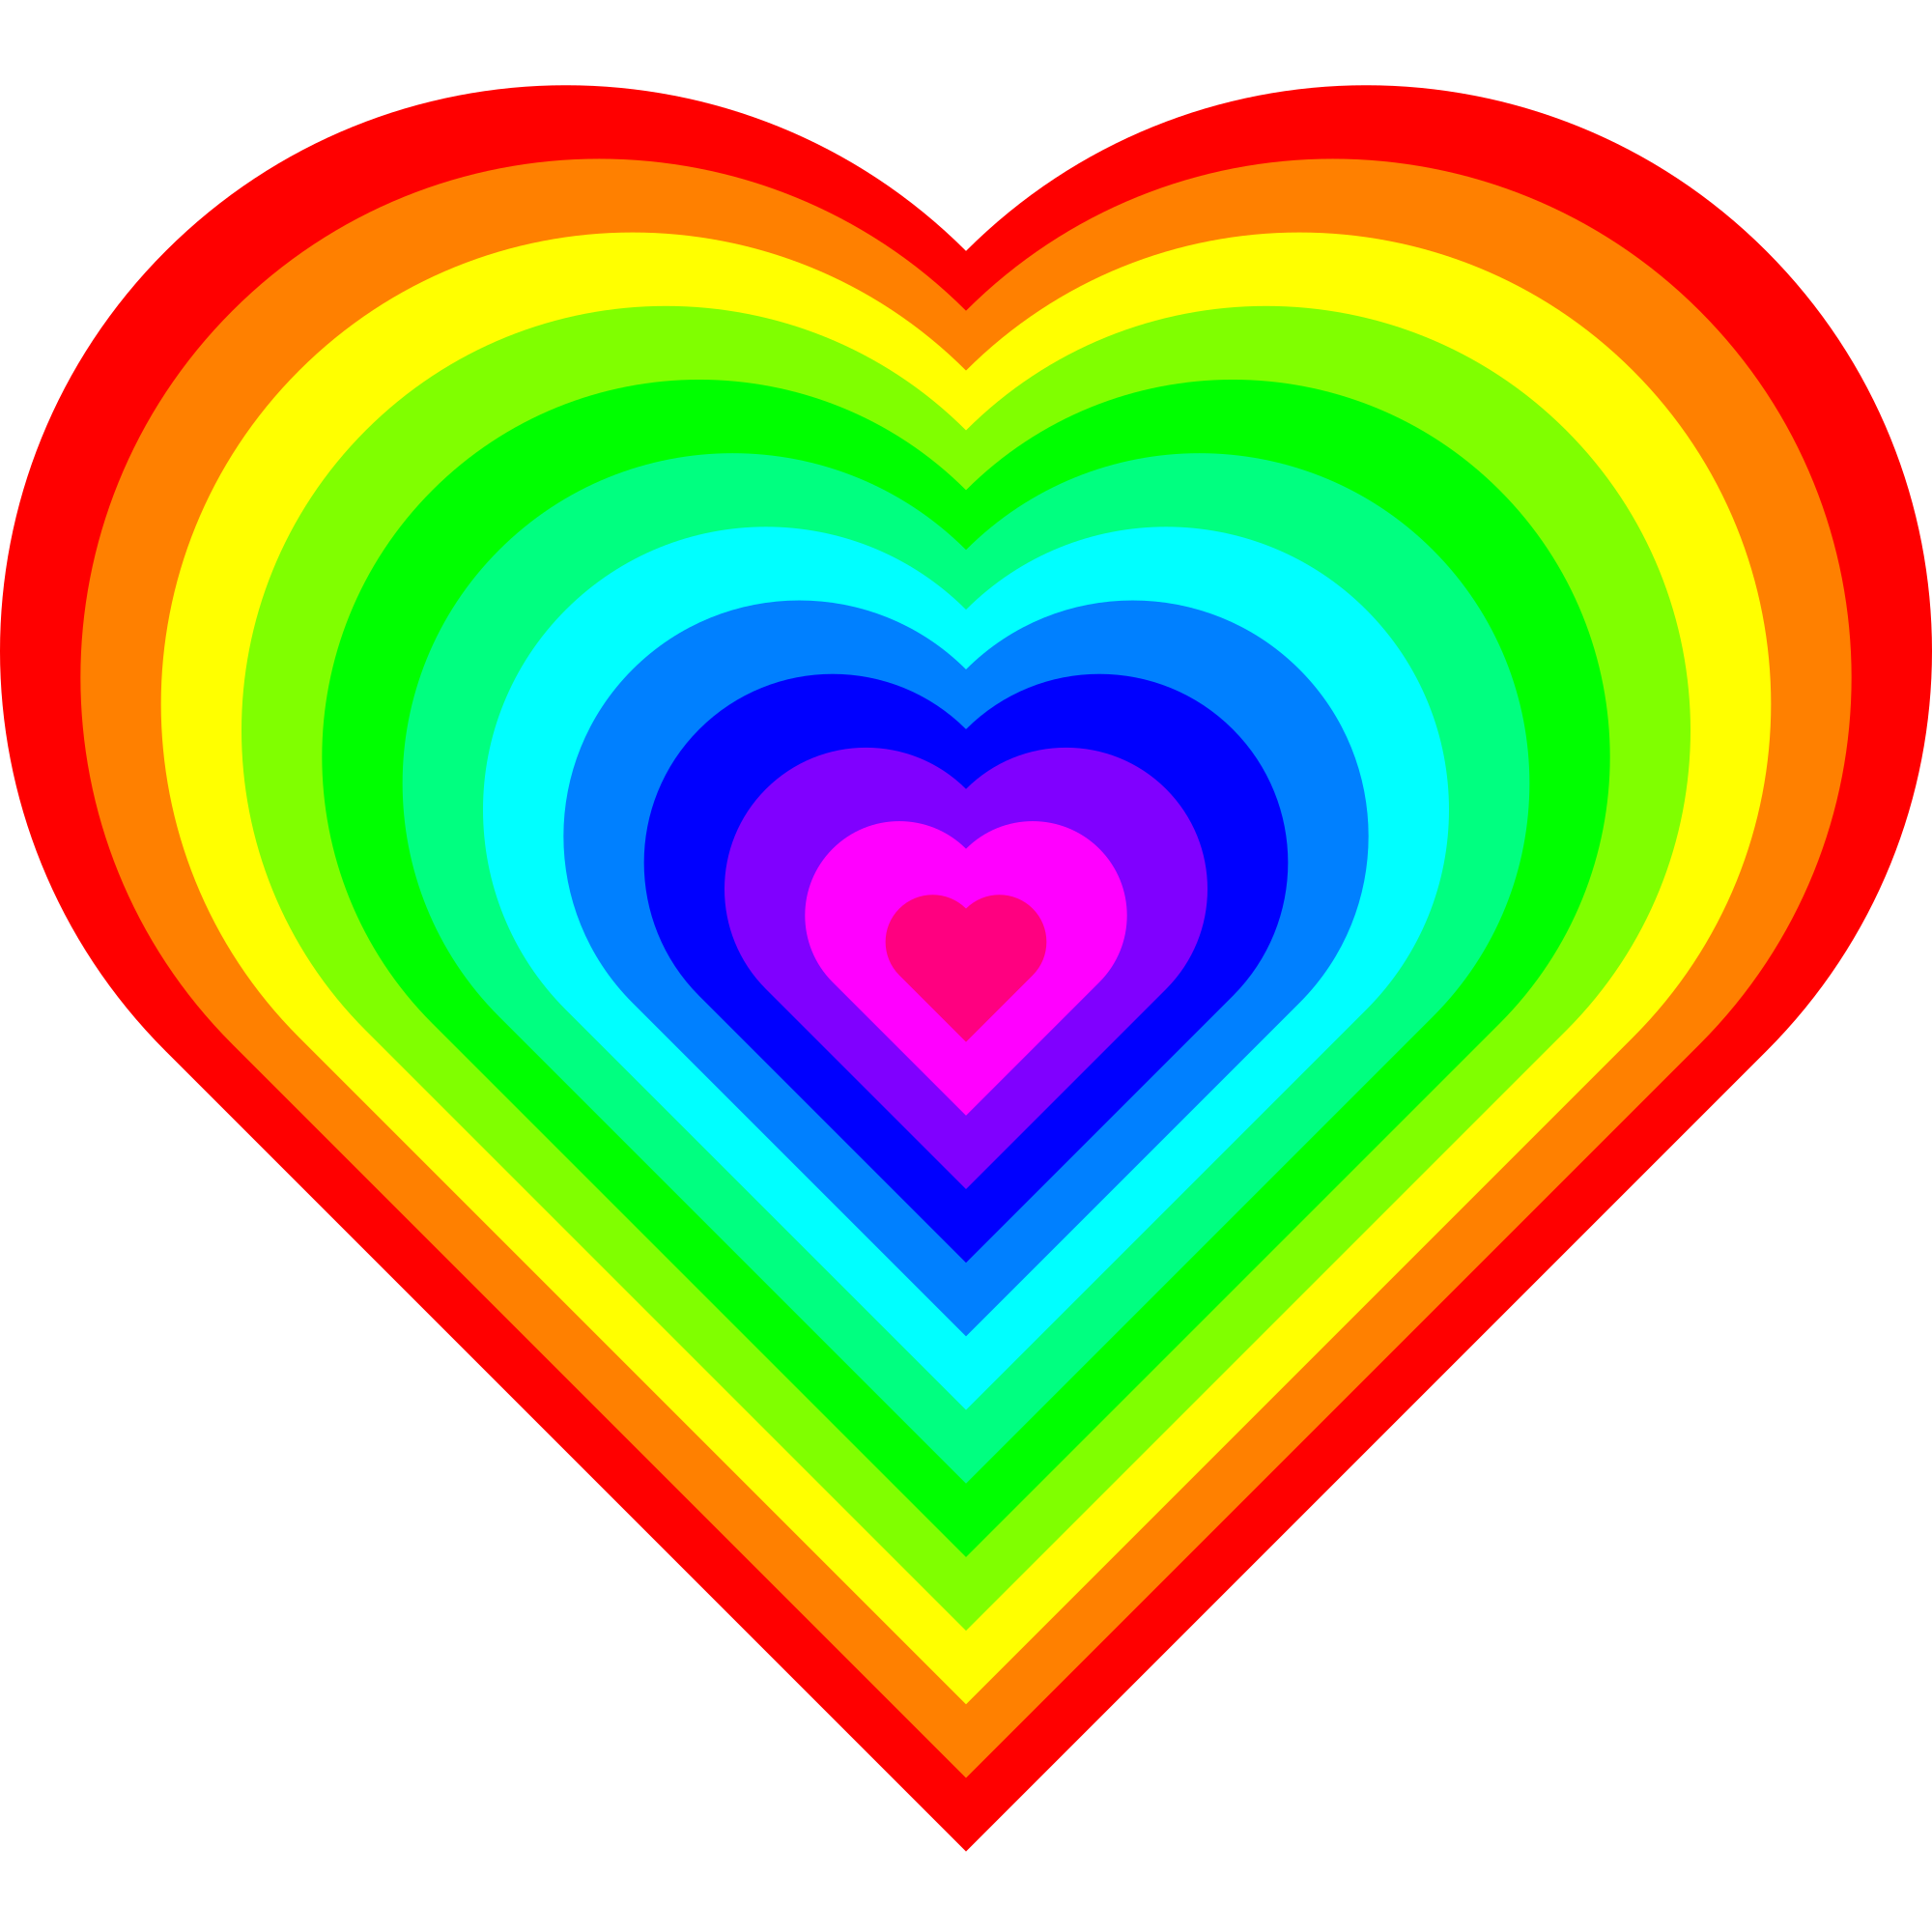 Rainbow hearts png. File heart symbol svg